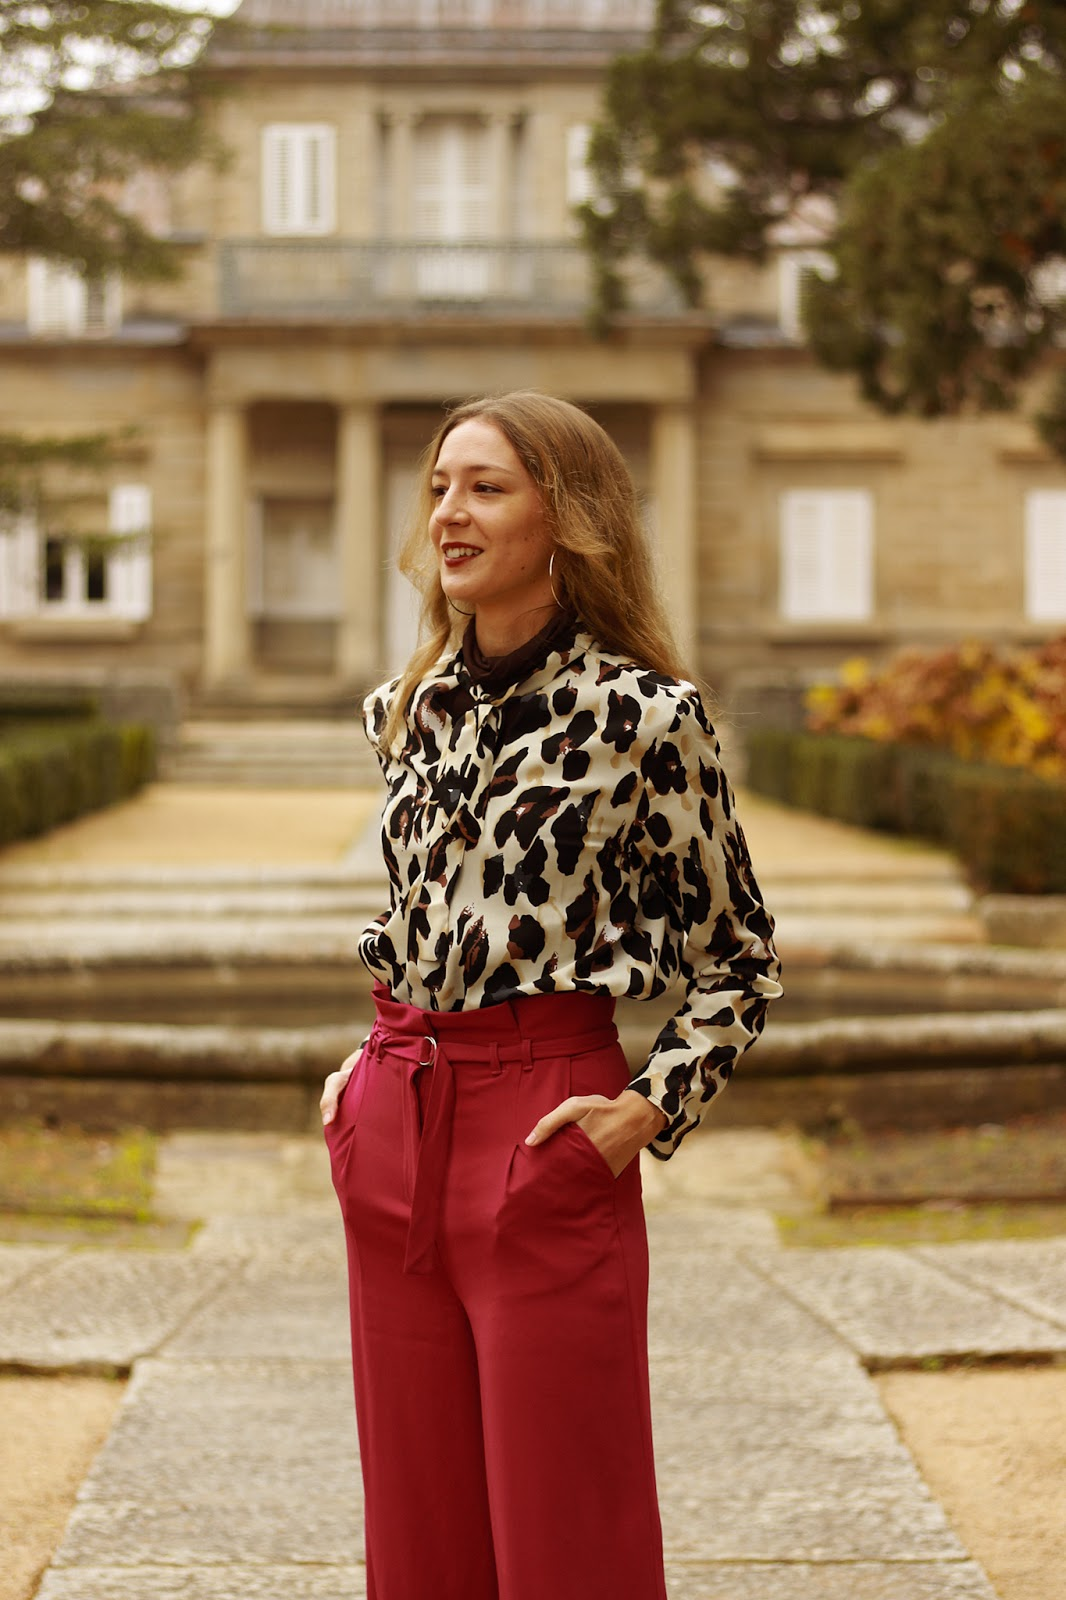 animal-print-shirt-palazzo-pink-pants-street-style